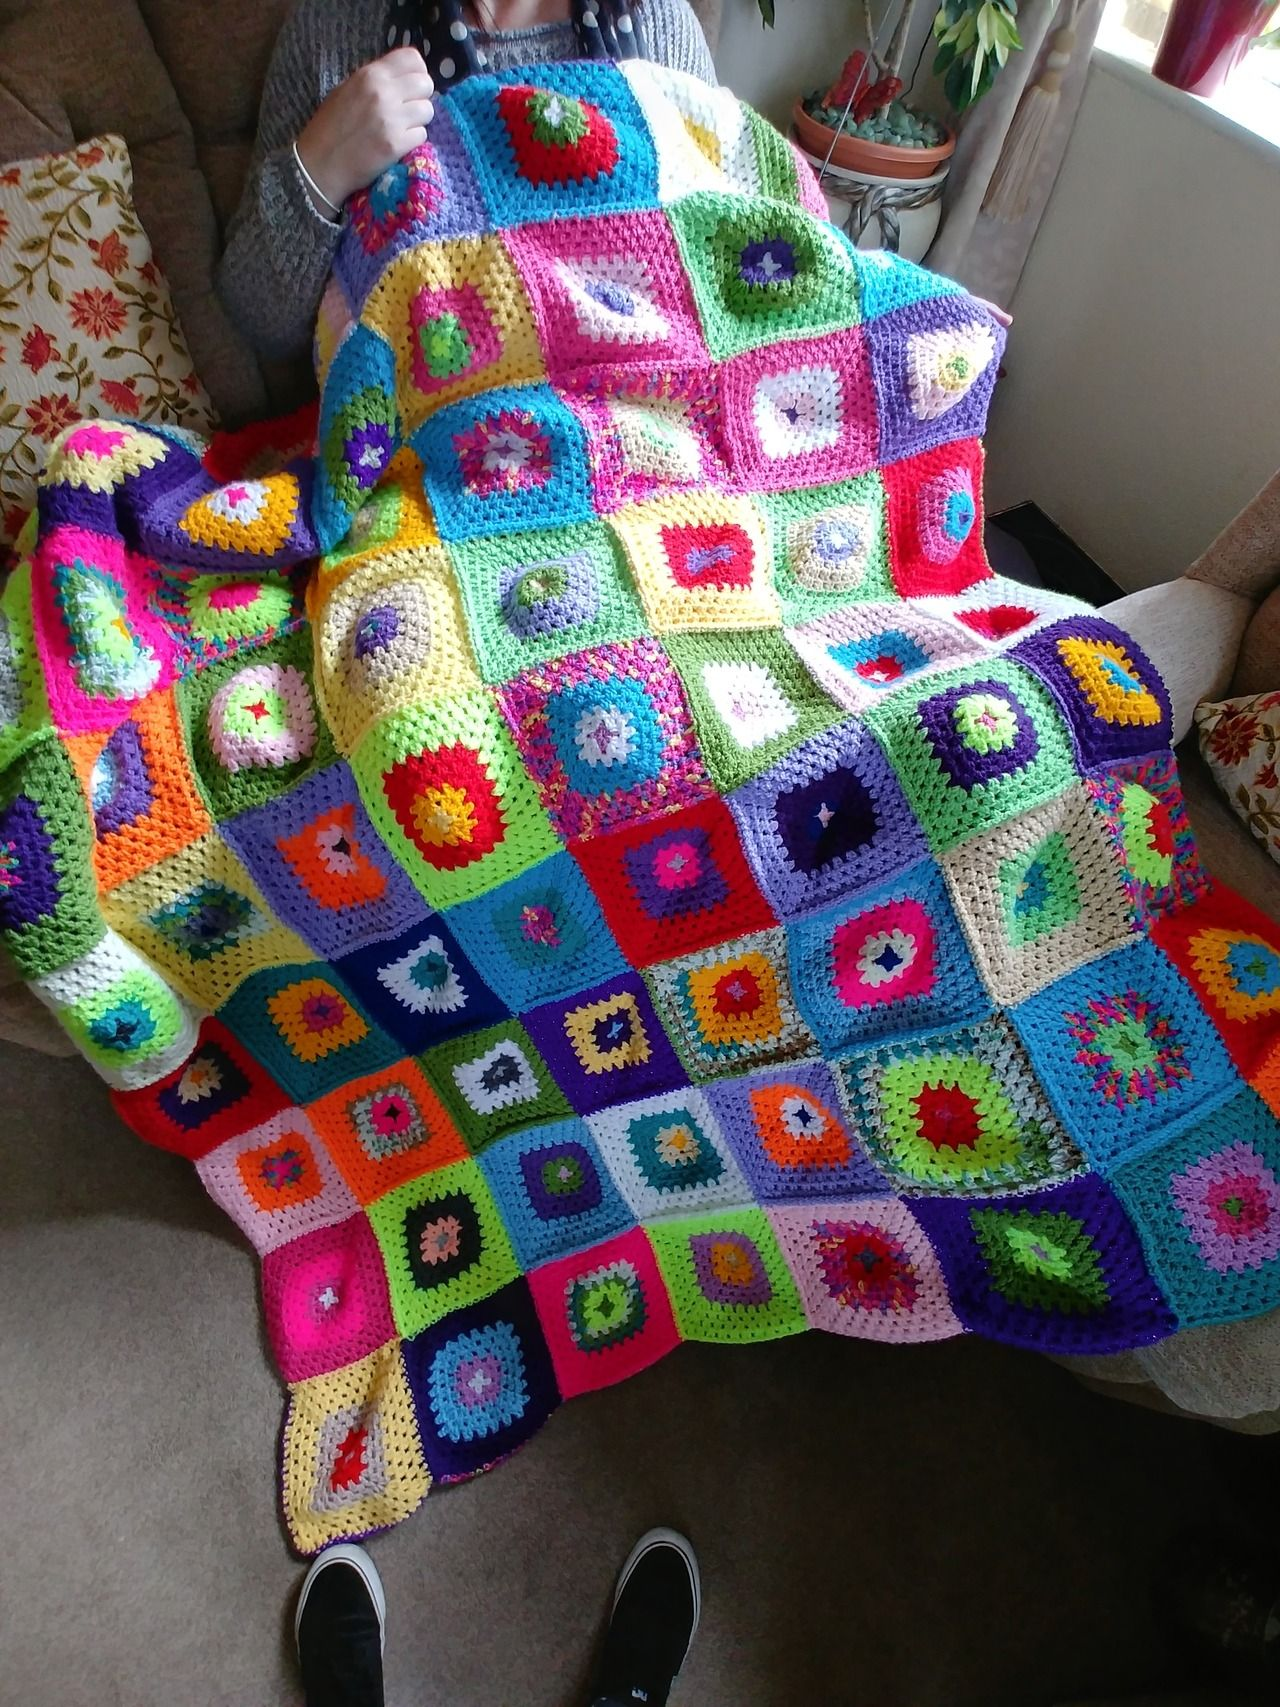 A beautiful crochet blanket made by my great aunt, I need her to show me her magic. - #blanket #colourful #cosy #crafts #crochet #handmade #knitting